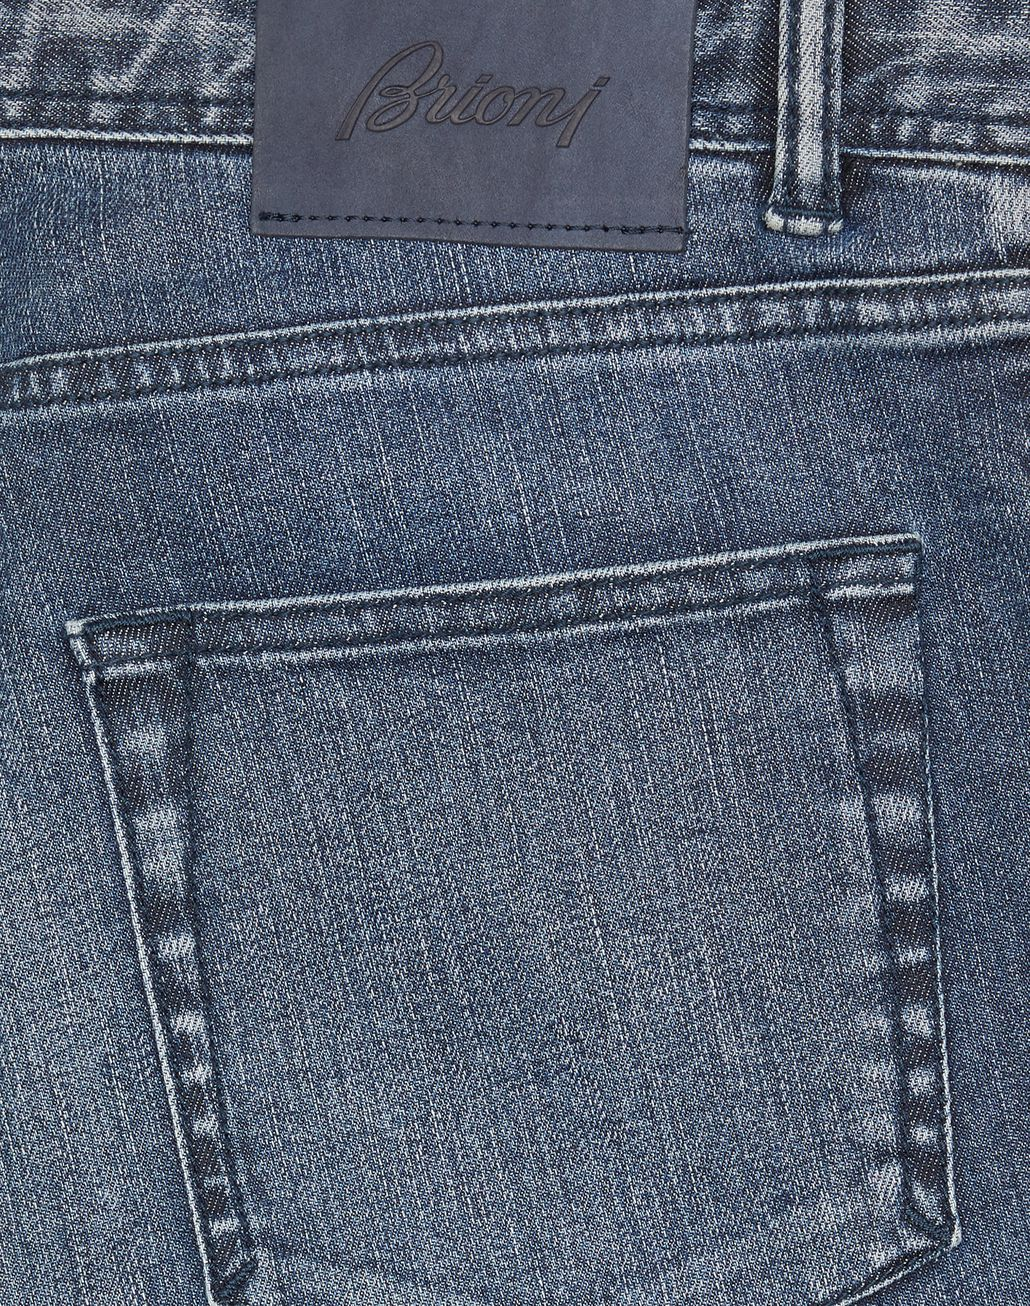 BRIONI Jeans in Marineblau Meribel Denim Herren e